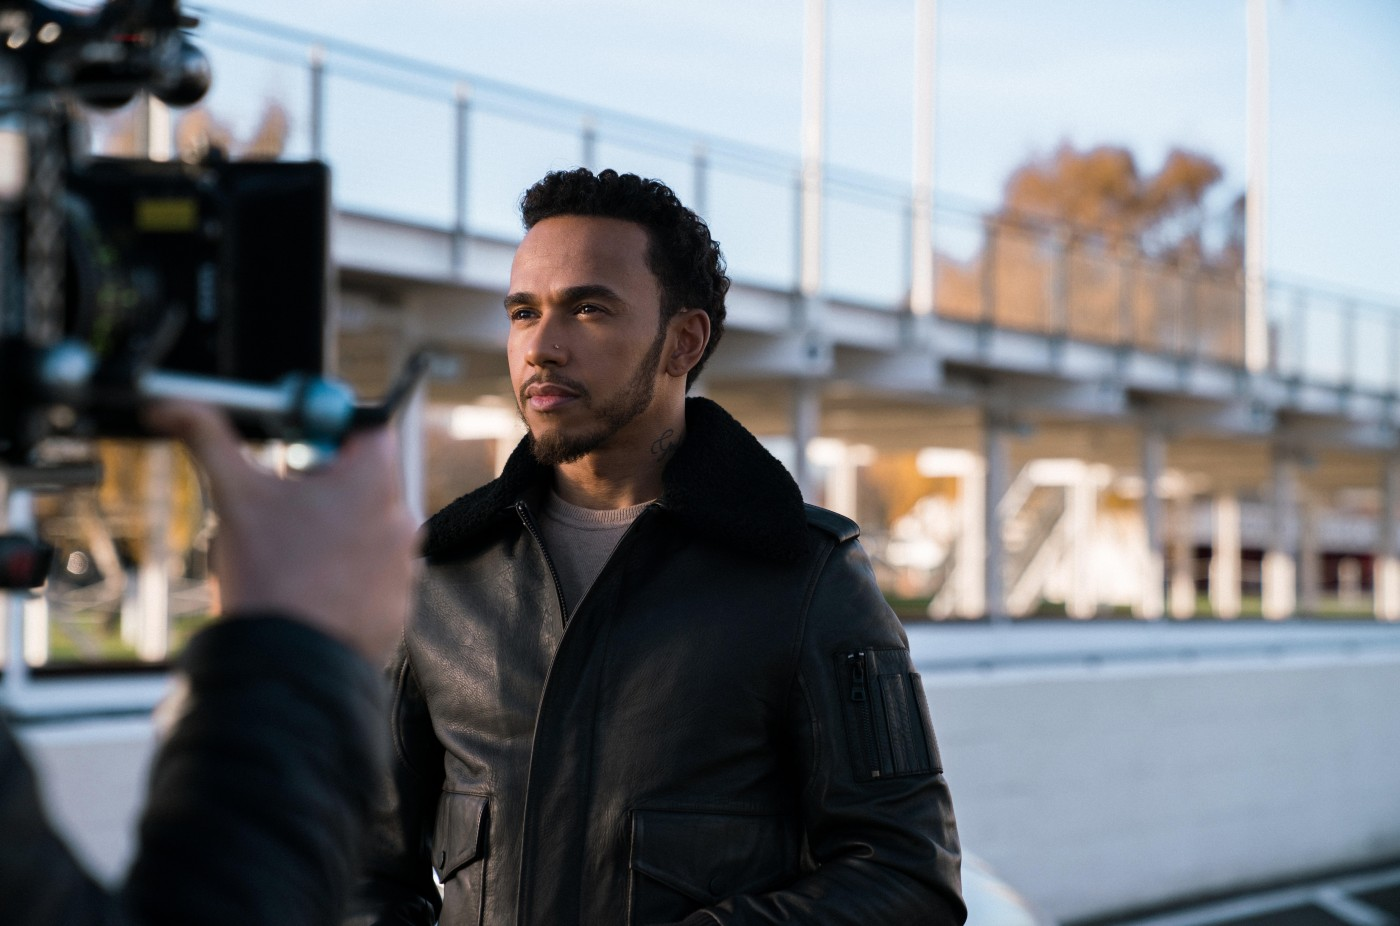 Lewis Hamilton stops time in the new IWC Schaffhausen campaign (VIDEO) - 1